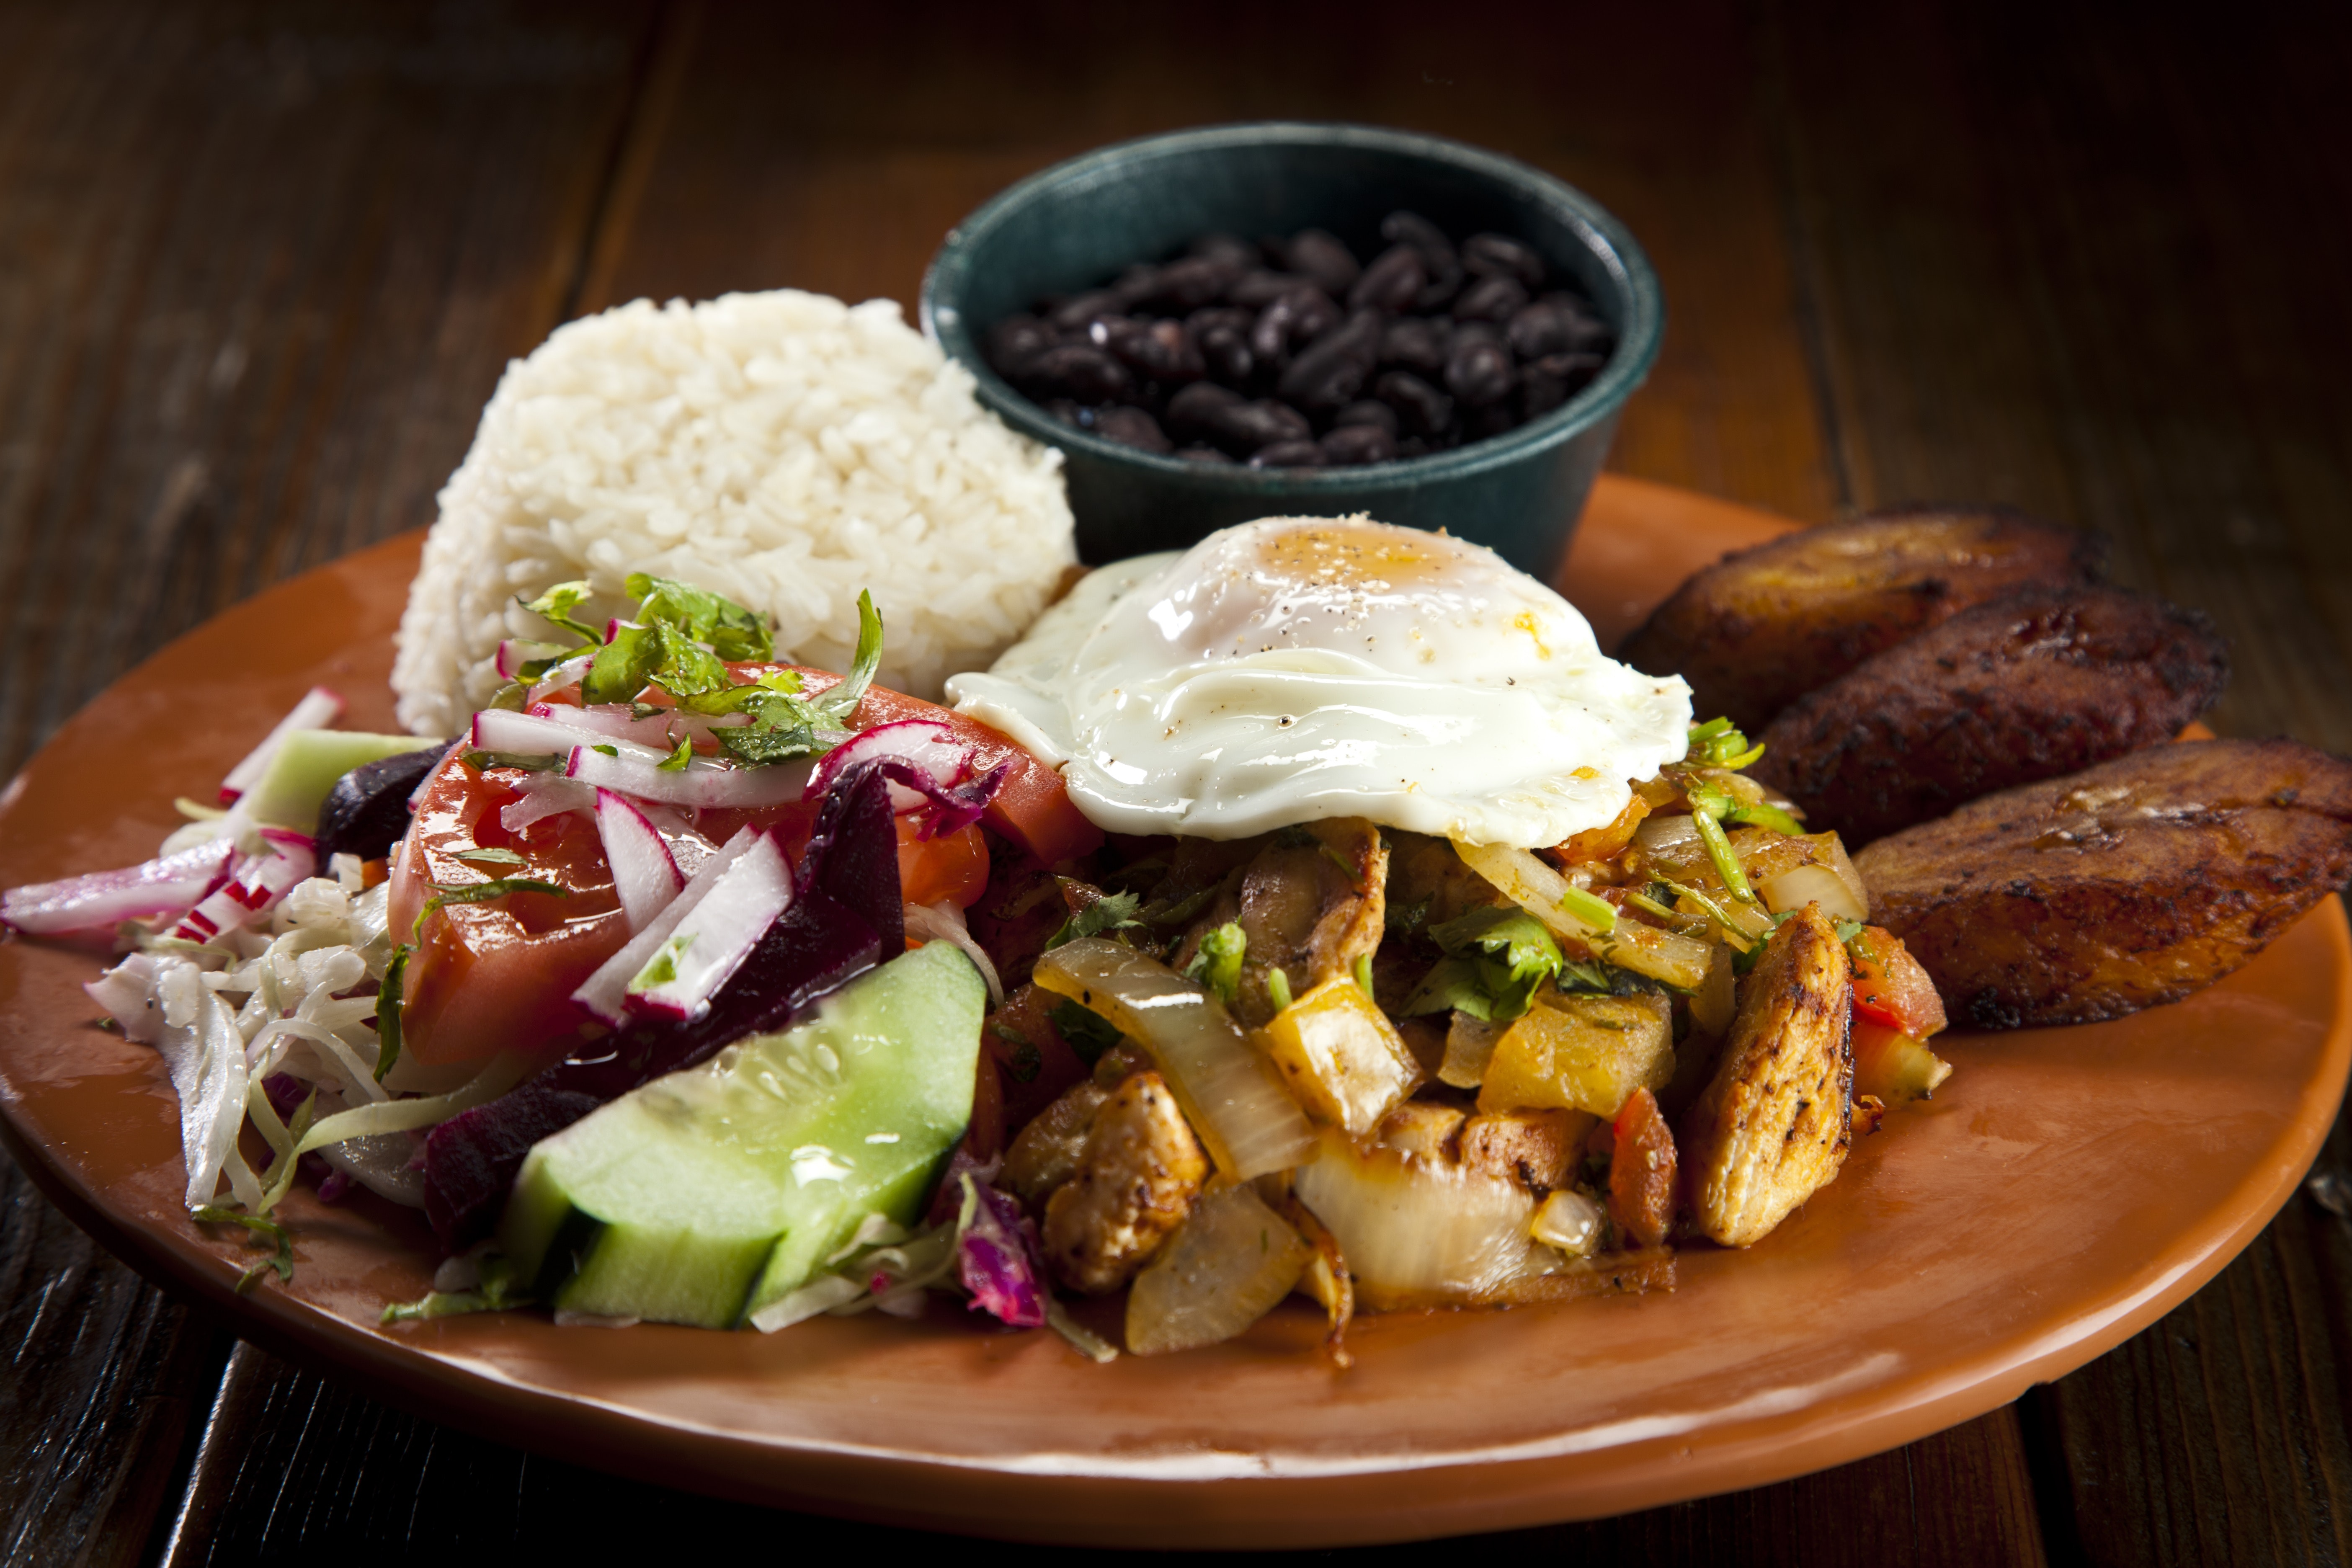 Casado (the National Dish of Costa Rica)